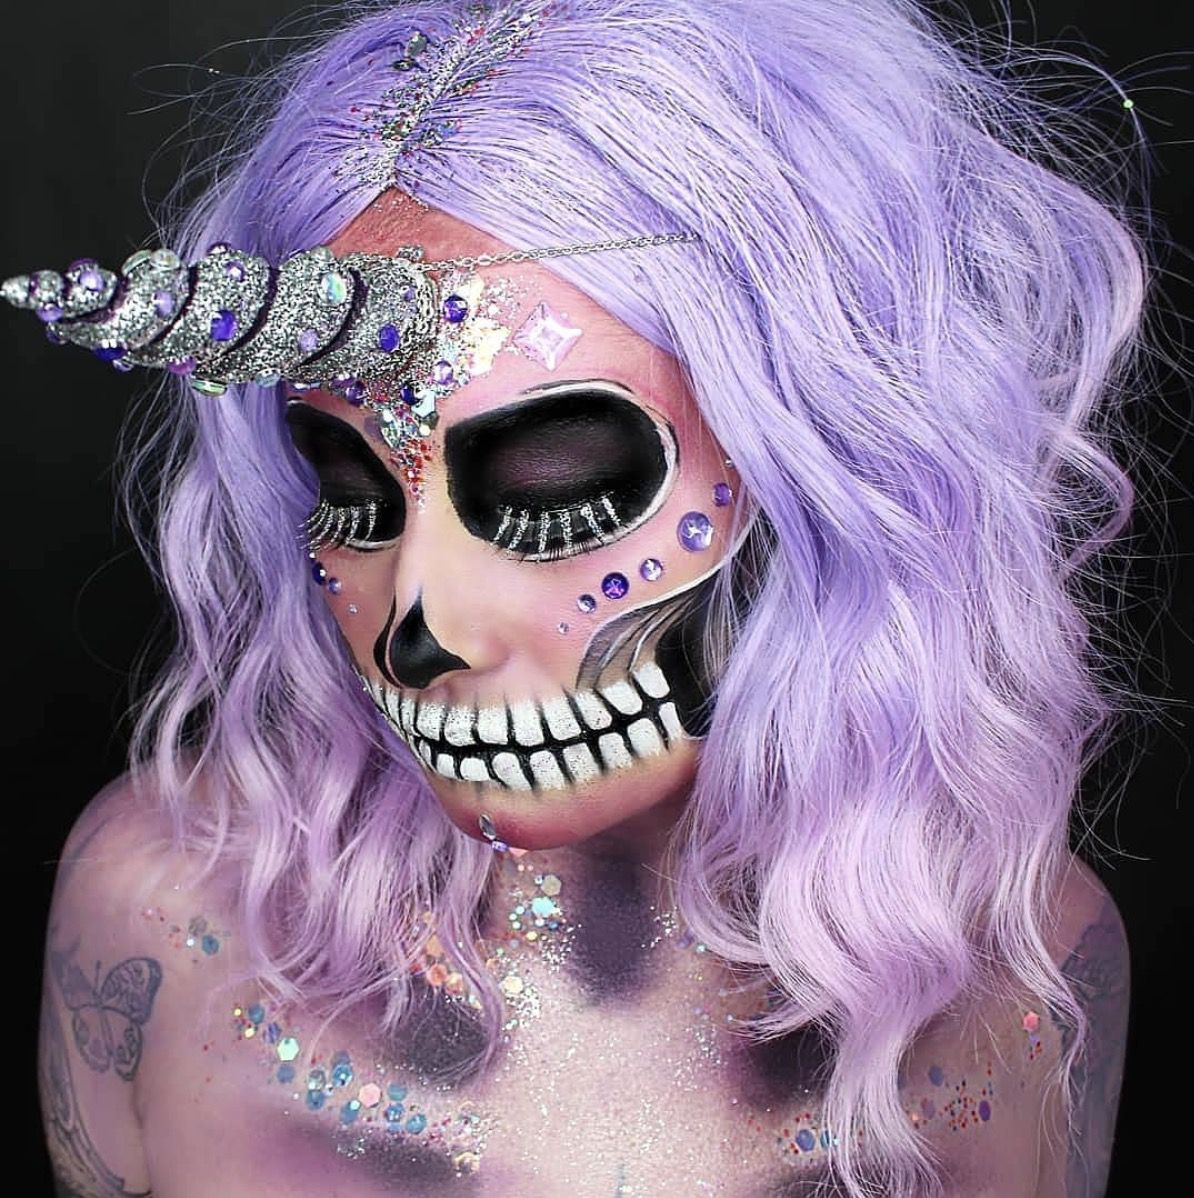 41 Most Jaw-Dropping Halloween Makeup Ideas That Are Still Pretty: The Catrina - Click though to see more awe inspiring pretty Halloween makeup looks, gorgeous Halloween makeup and Halloween costumes. #halloweenmakeup #halloweenmakeuppretty #halloweencostumes #halloweenmakeupinspo #halloweenmakeupcatrina